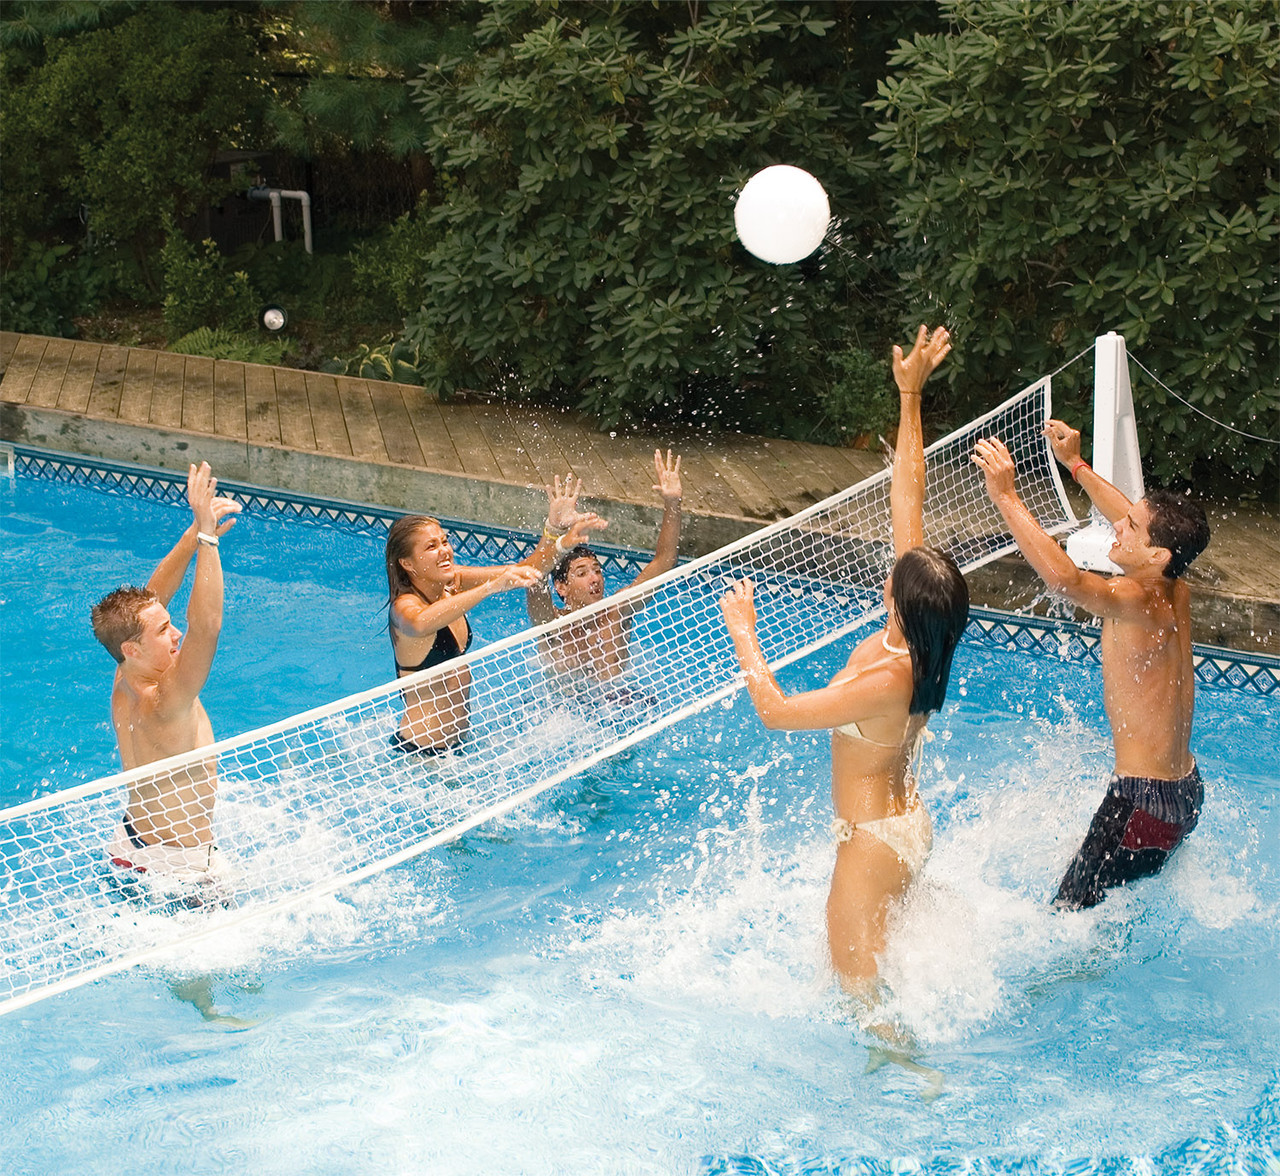 Water sports pool jam basketball volleyball swimming - Pool volleyball ...